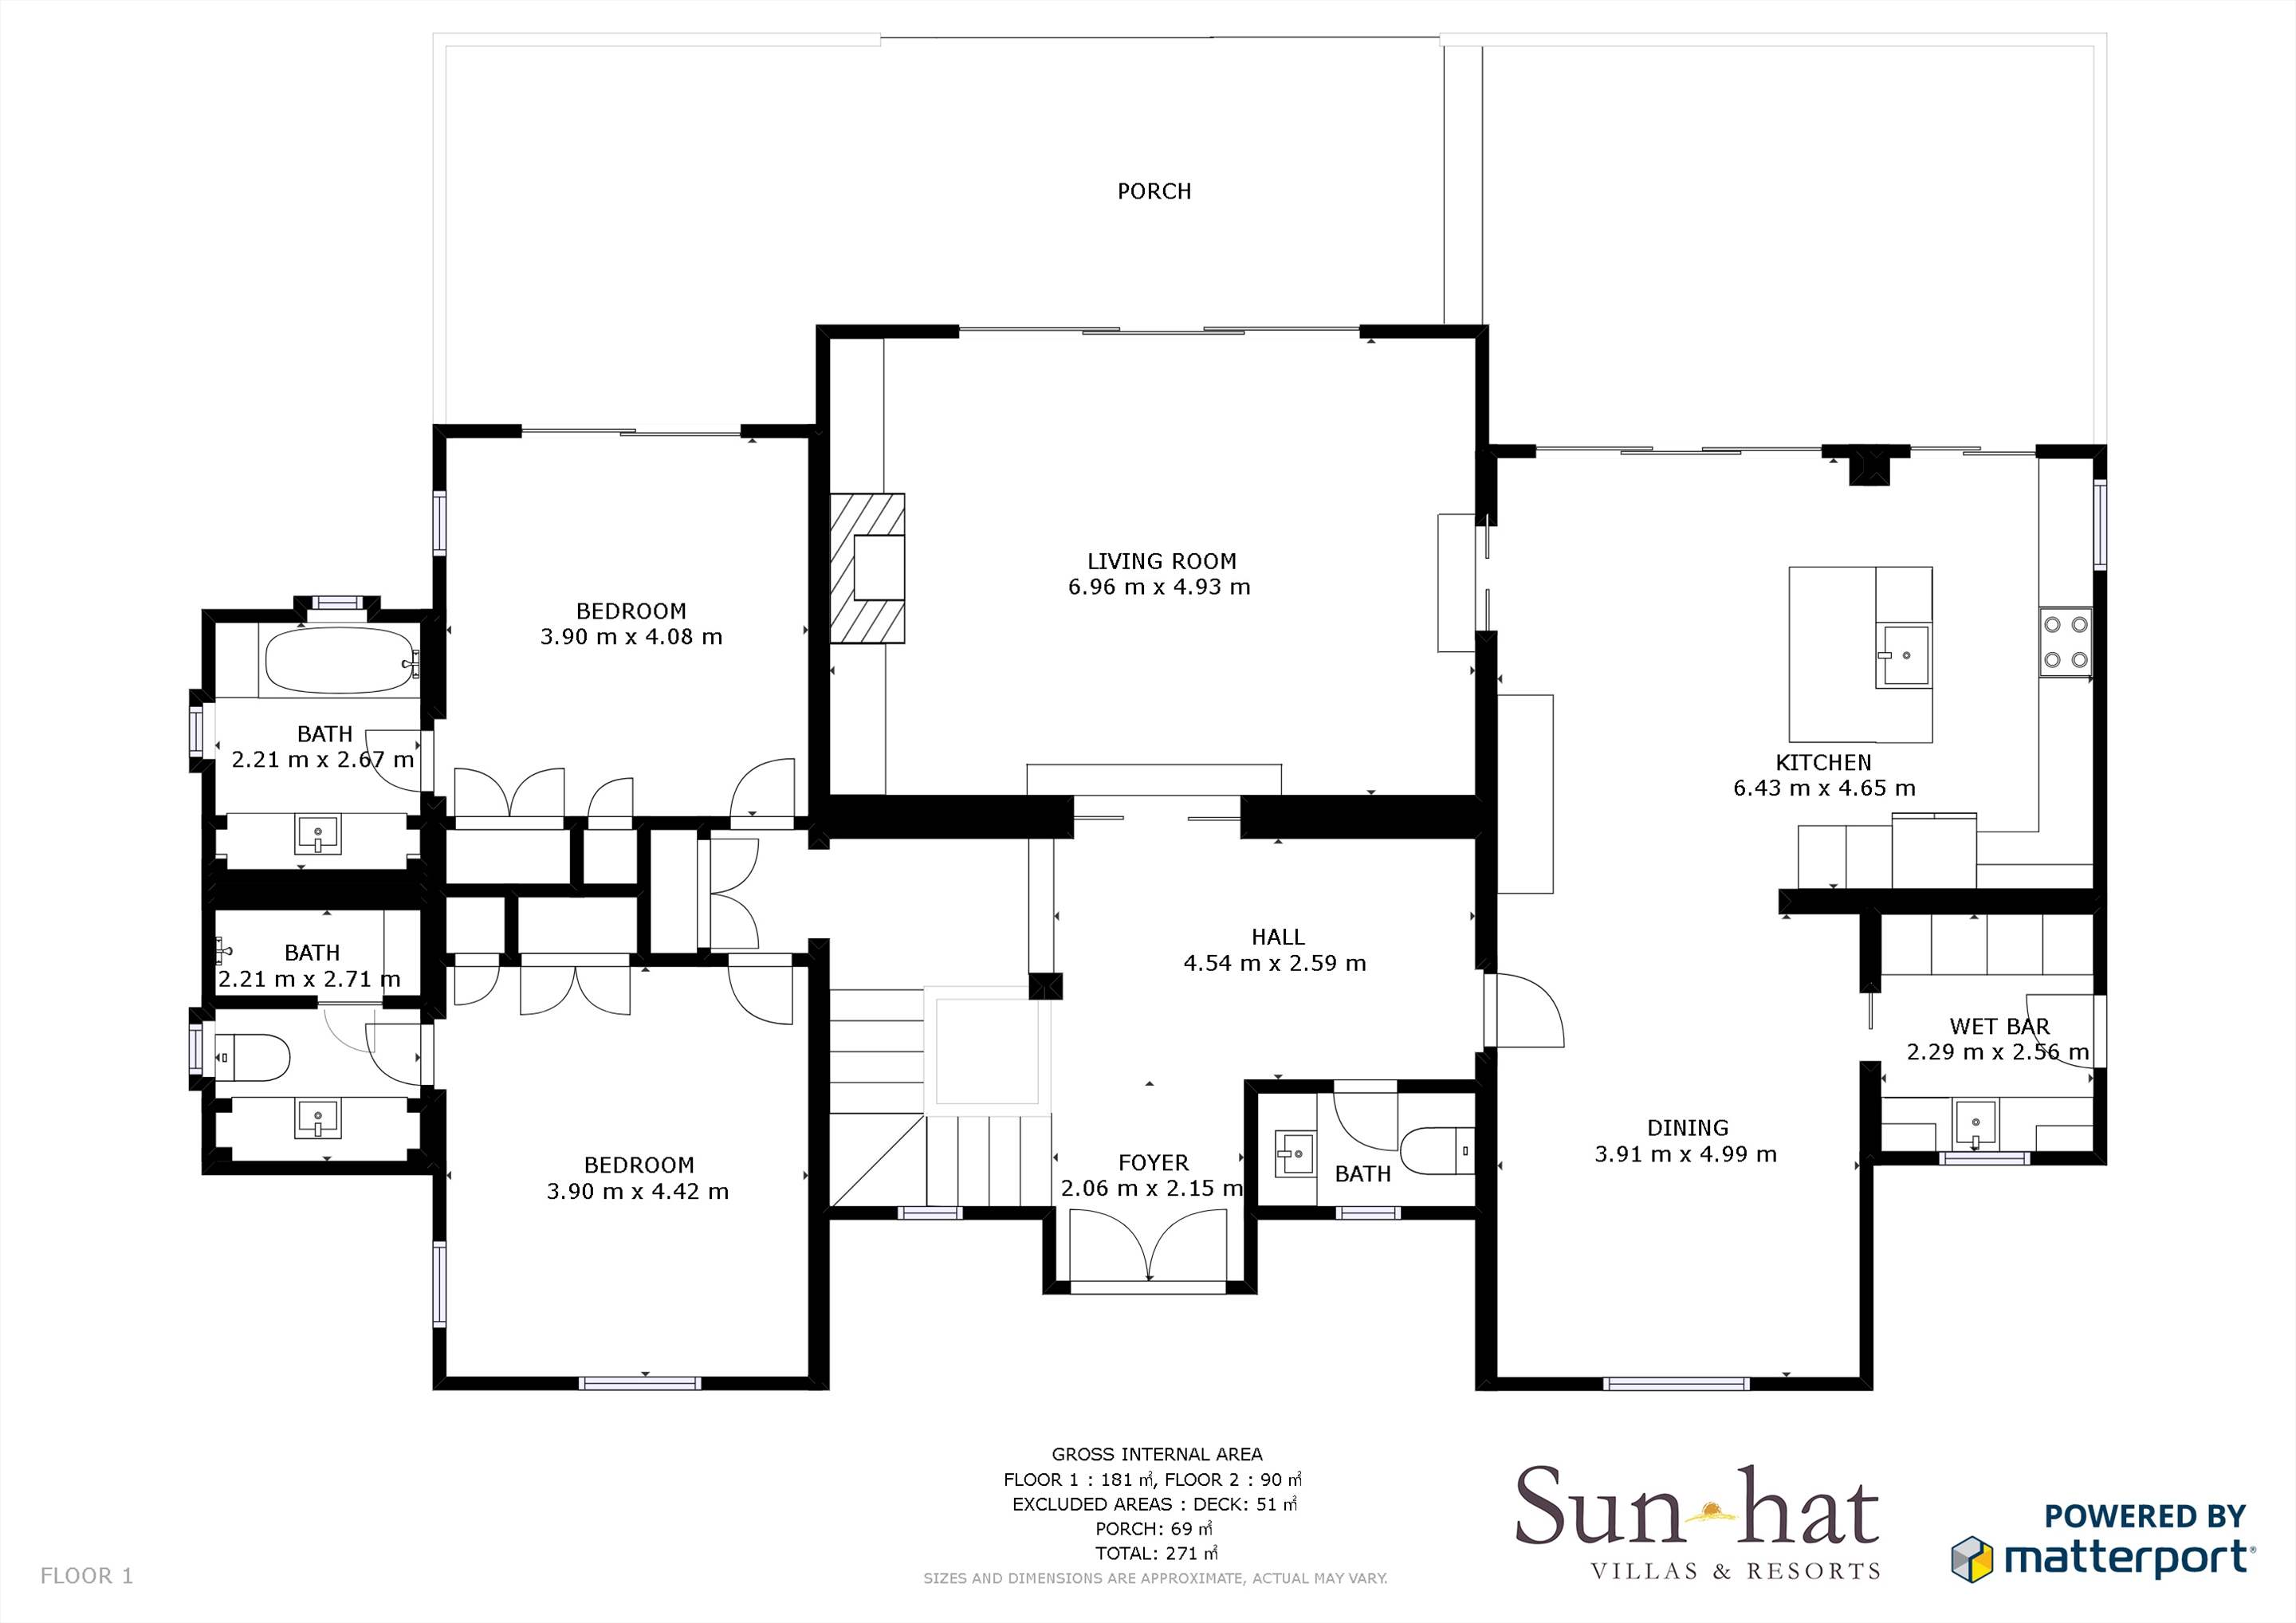 Villa Campainha, 4 Bedroom Rental Floorplan #1